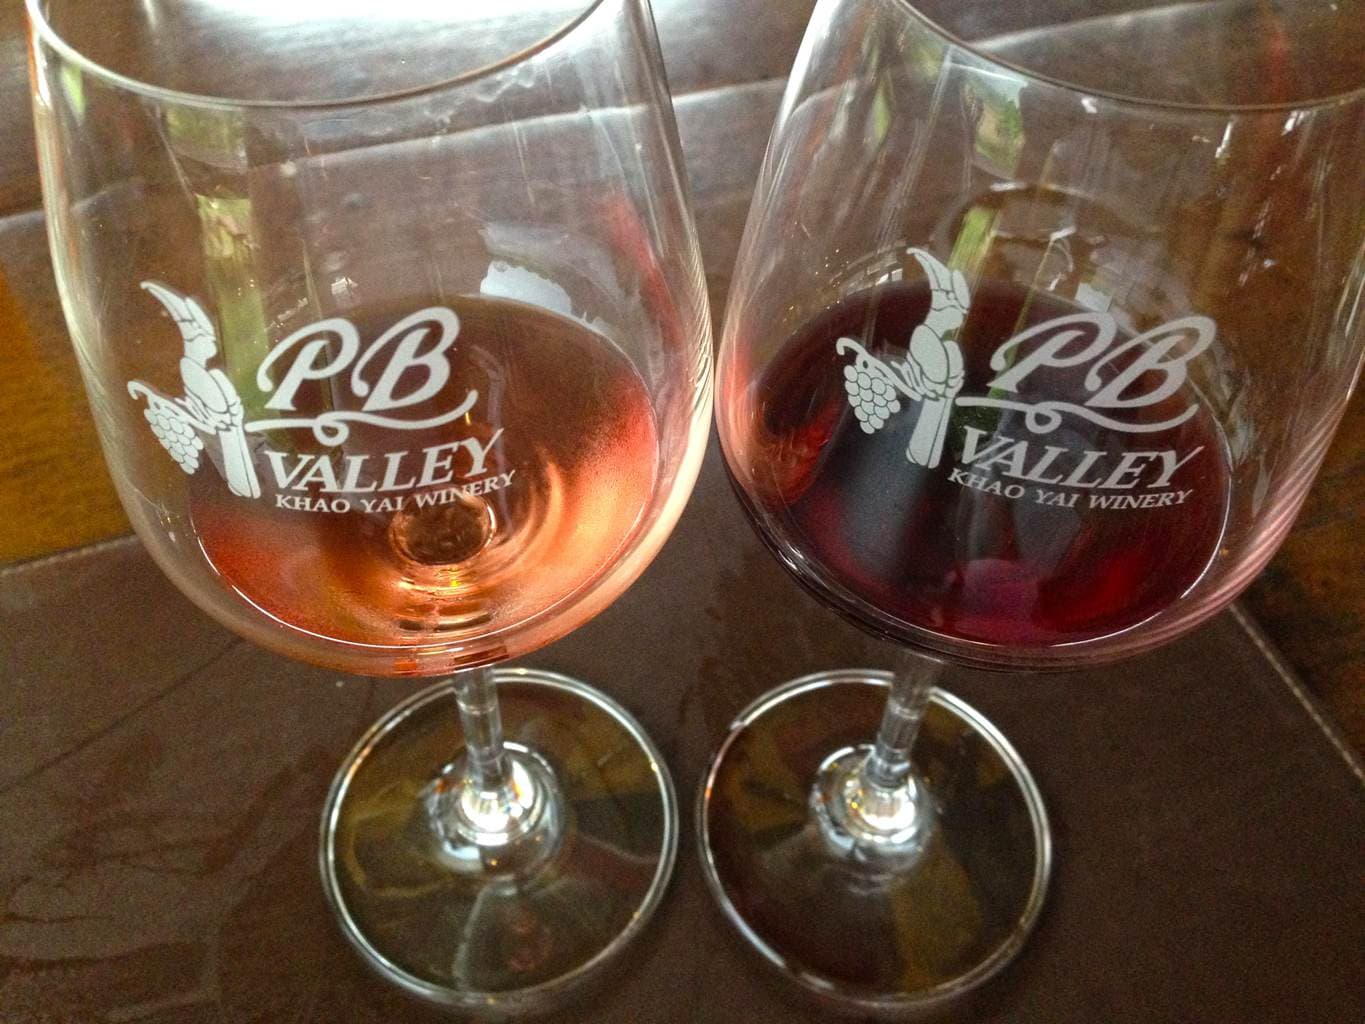 PB Valley Winery wine tasting